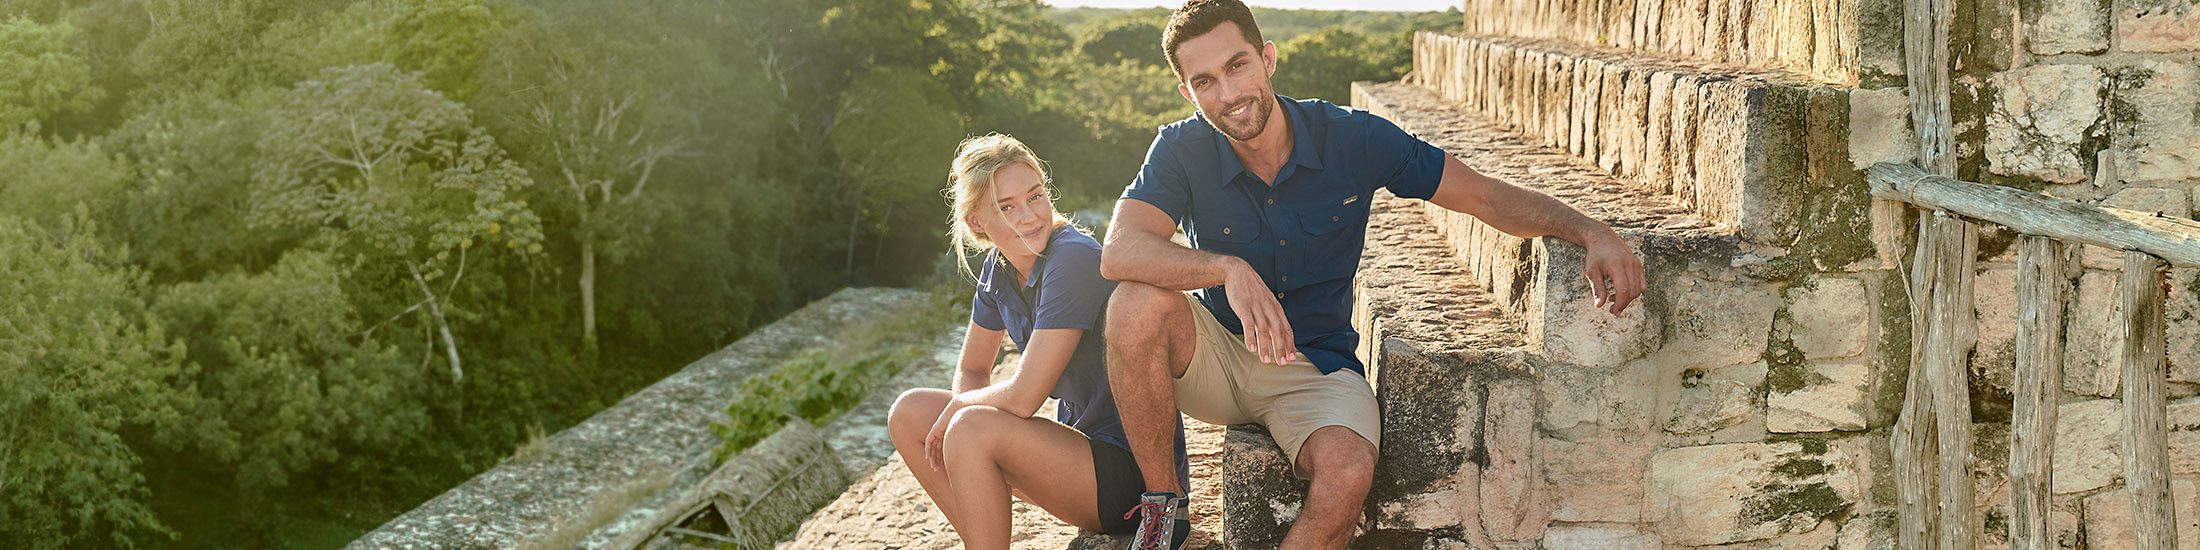 A man and a woman wearing Departure Shirts and Horizon Shorts explore ancient ruins in an exotic location